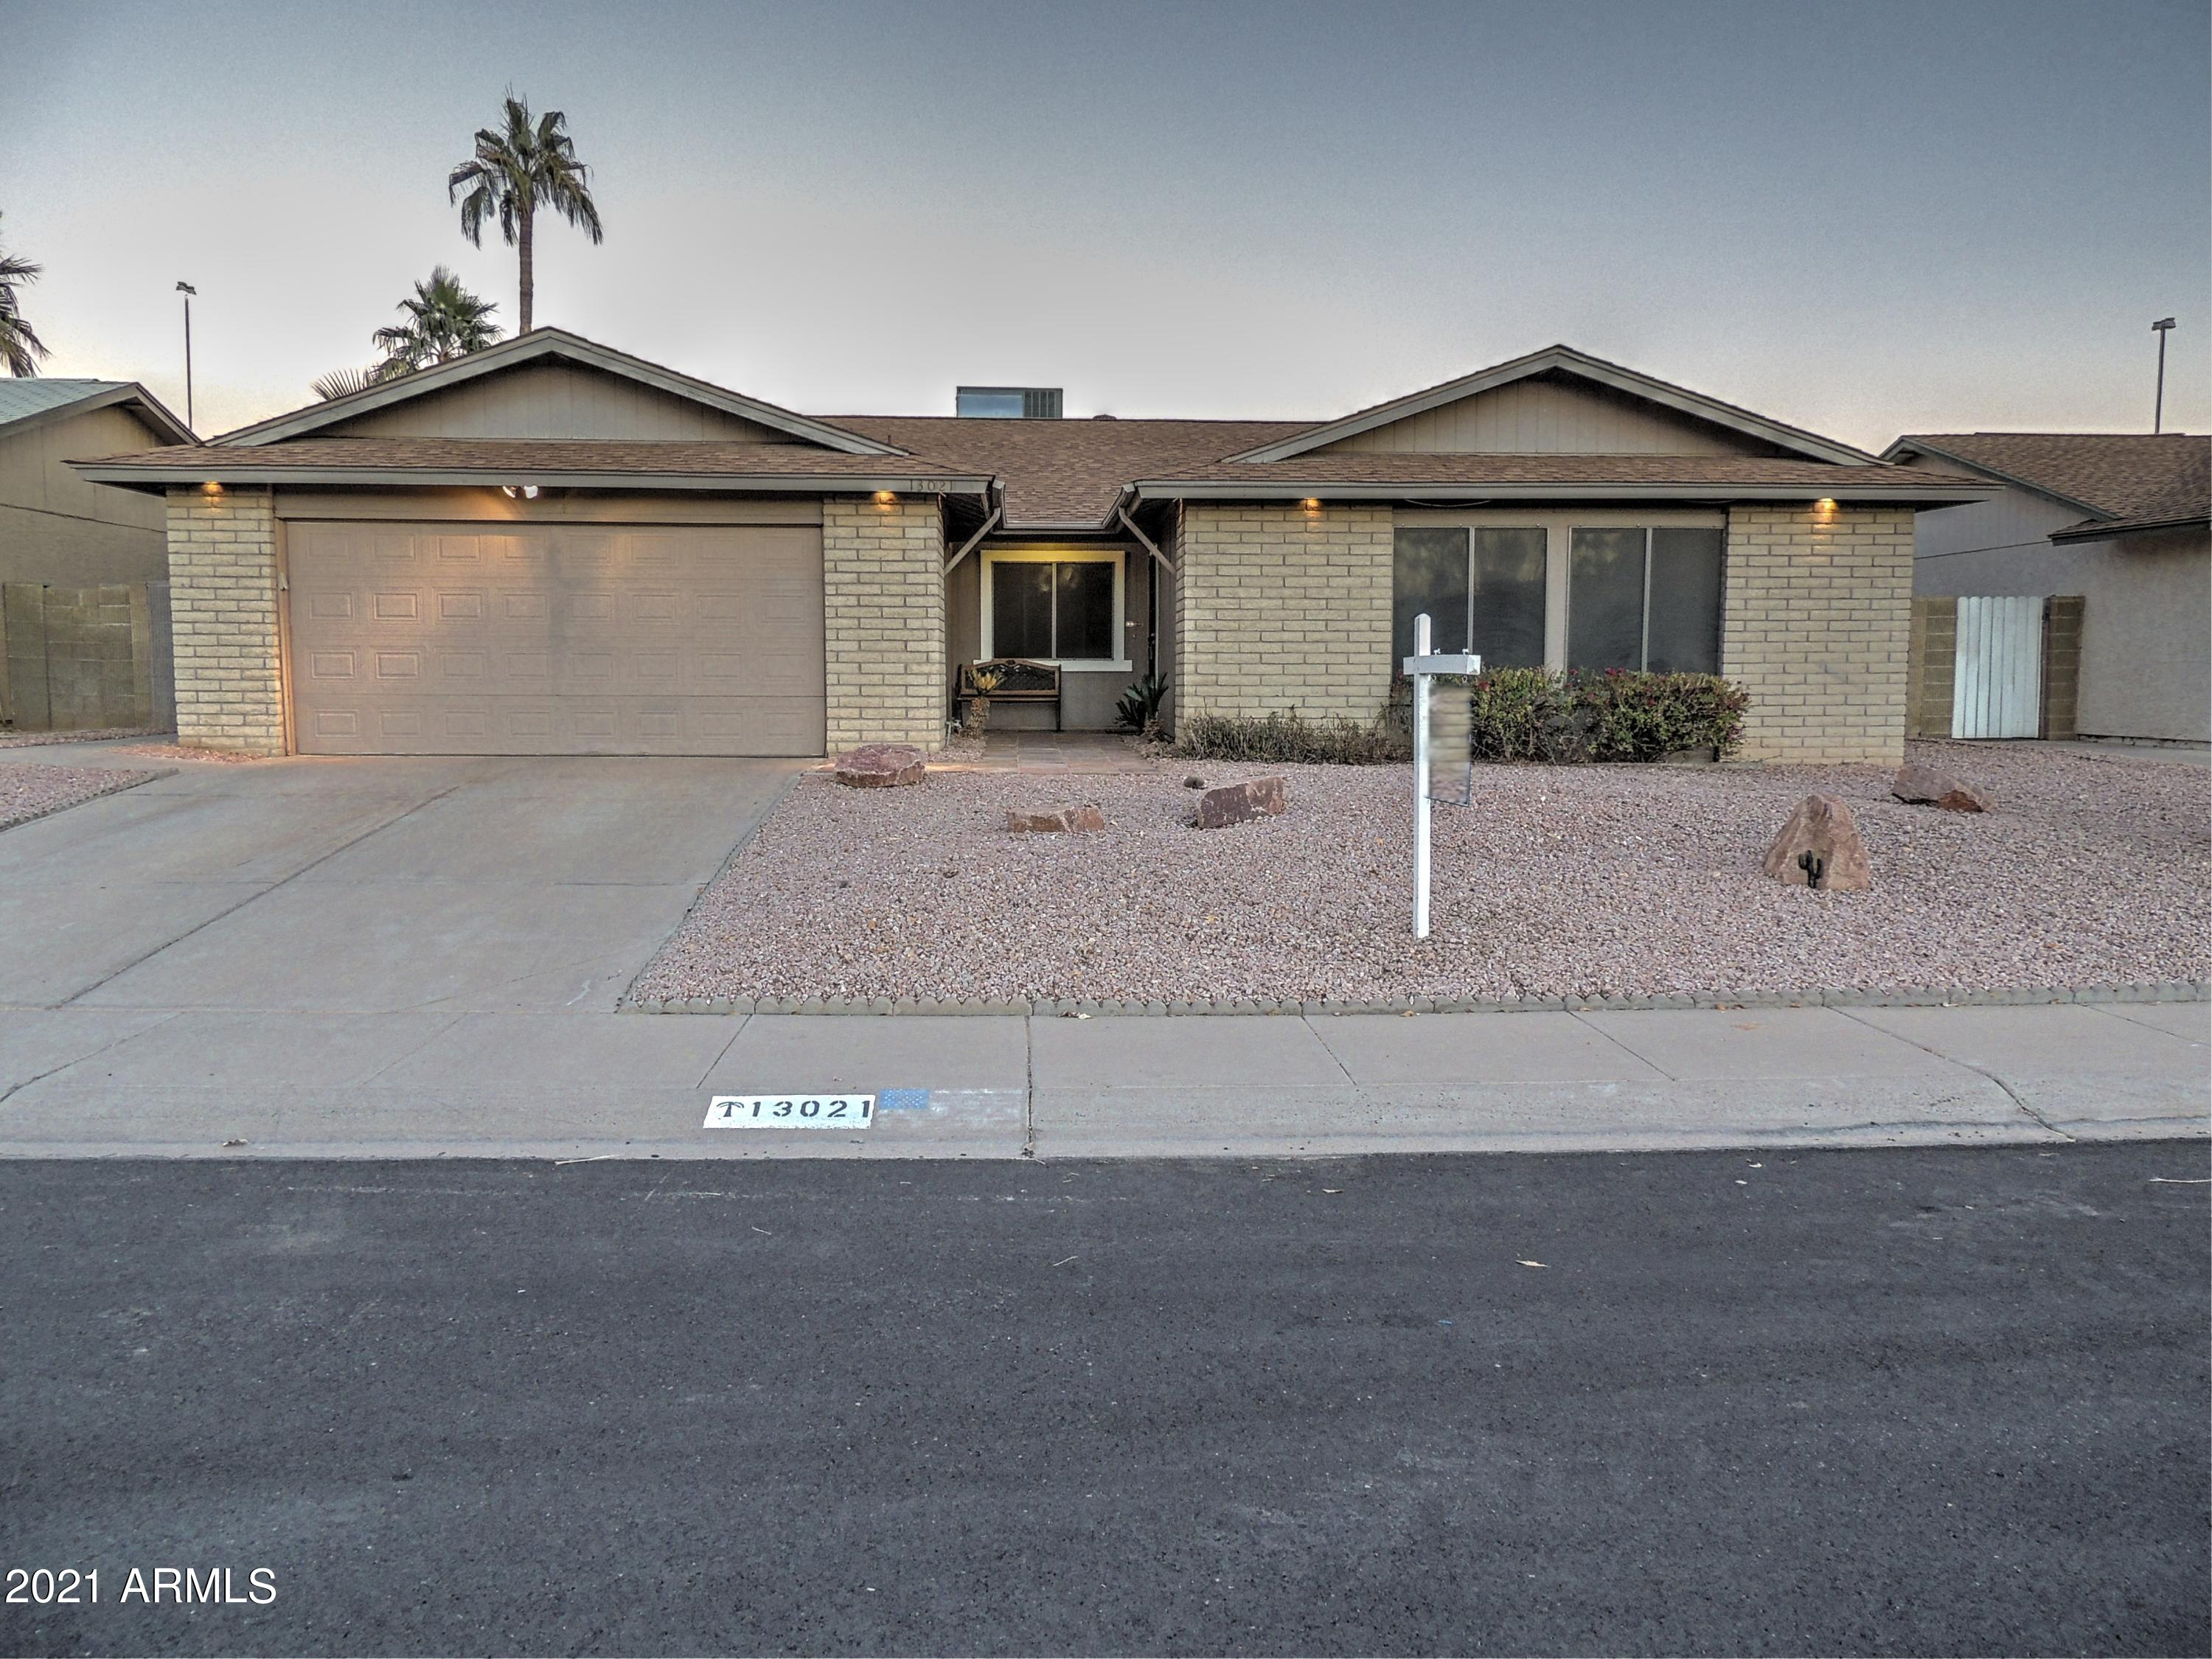 Property for sale at 13021 S Kosh Street, Phoenix,  Arizona 85044